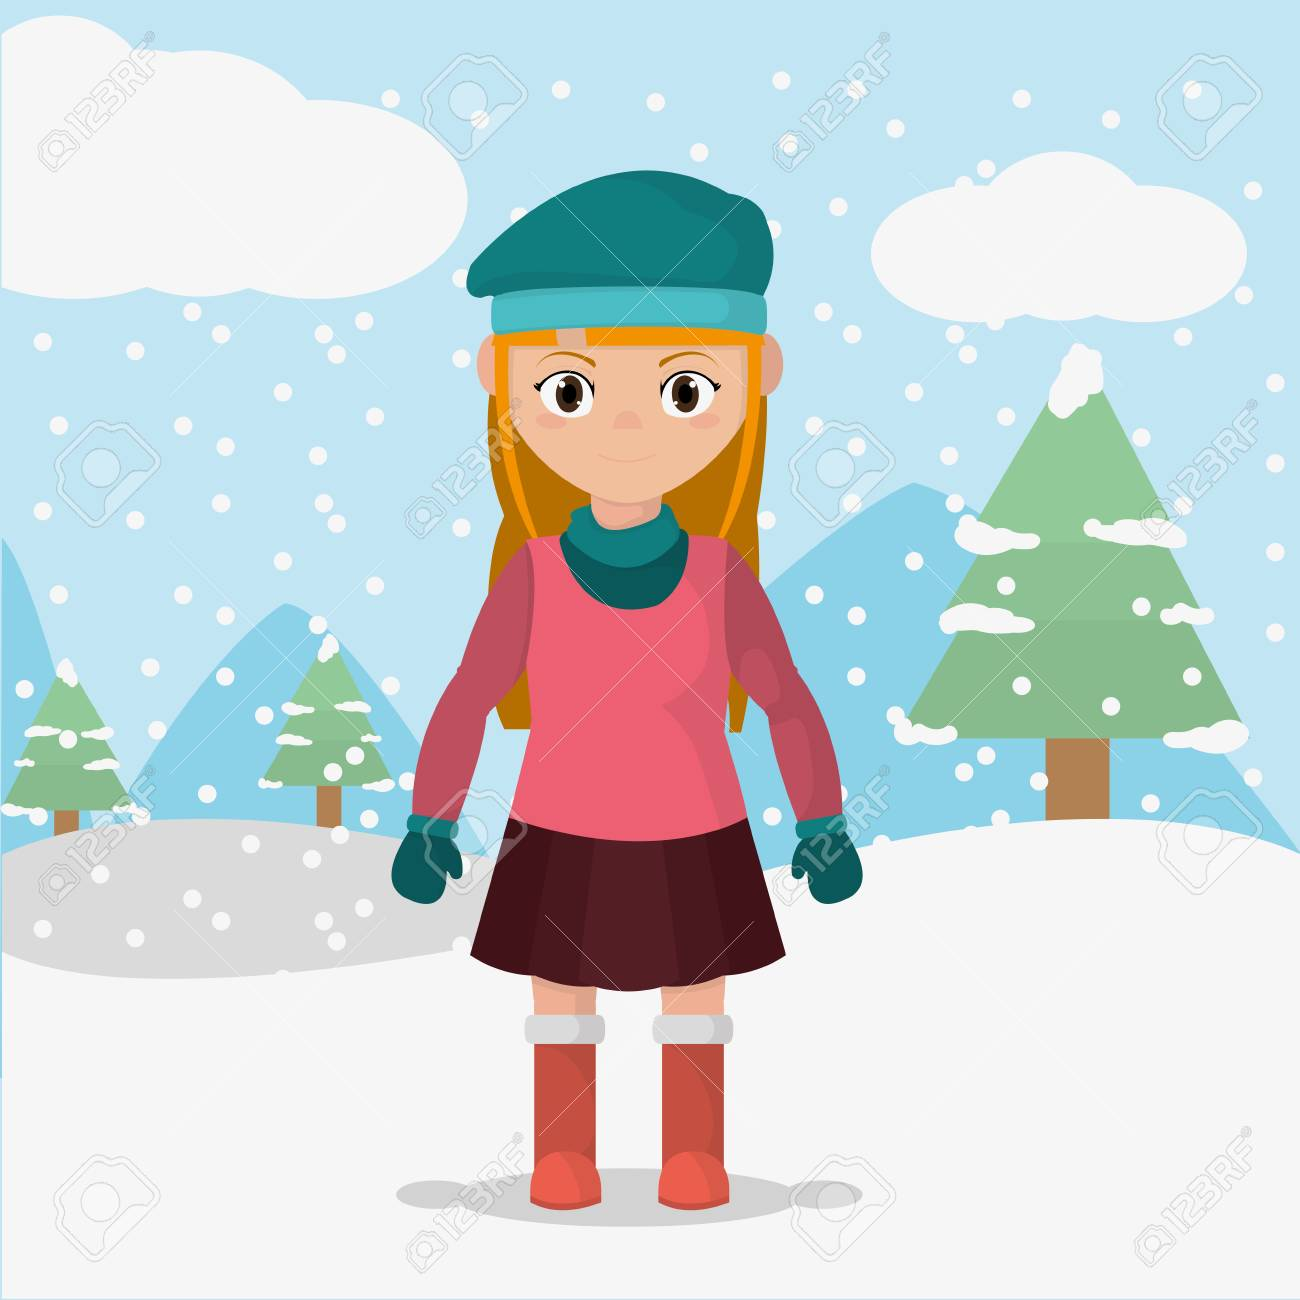 Winter Cold Clip Art